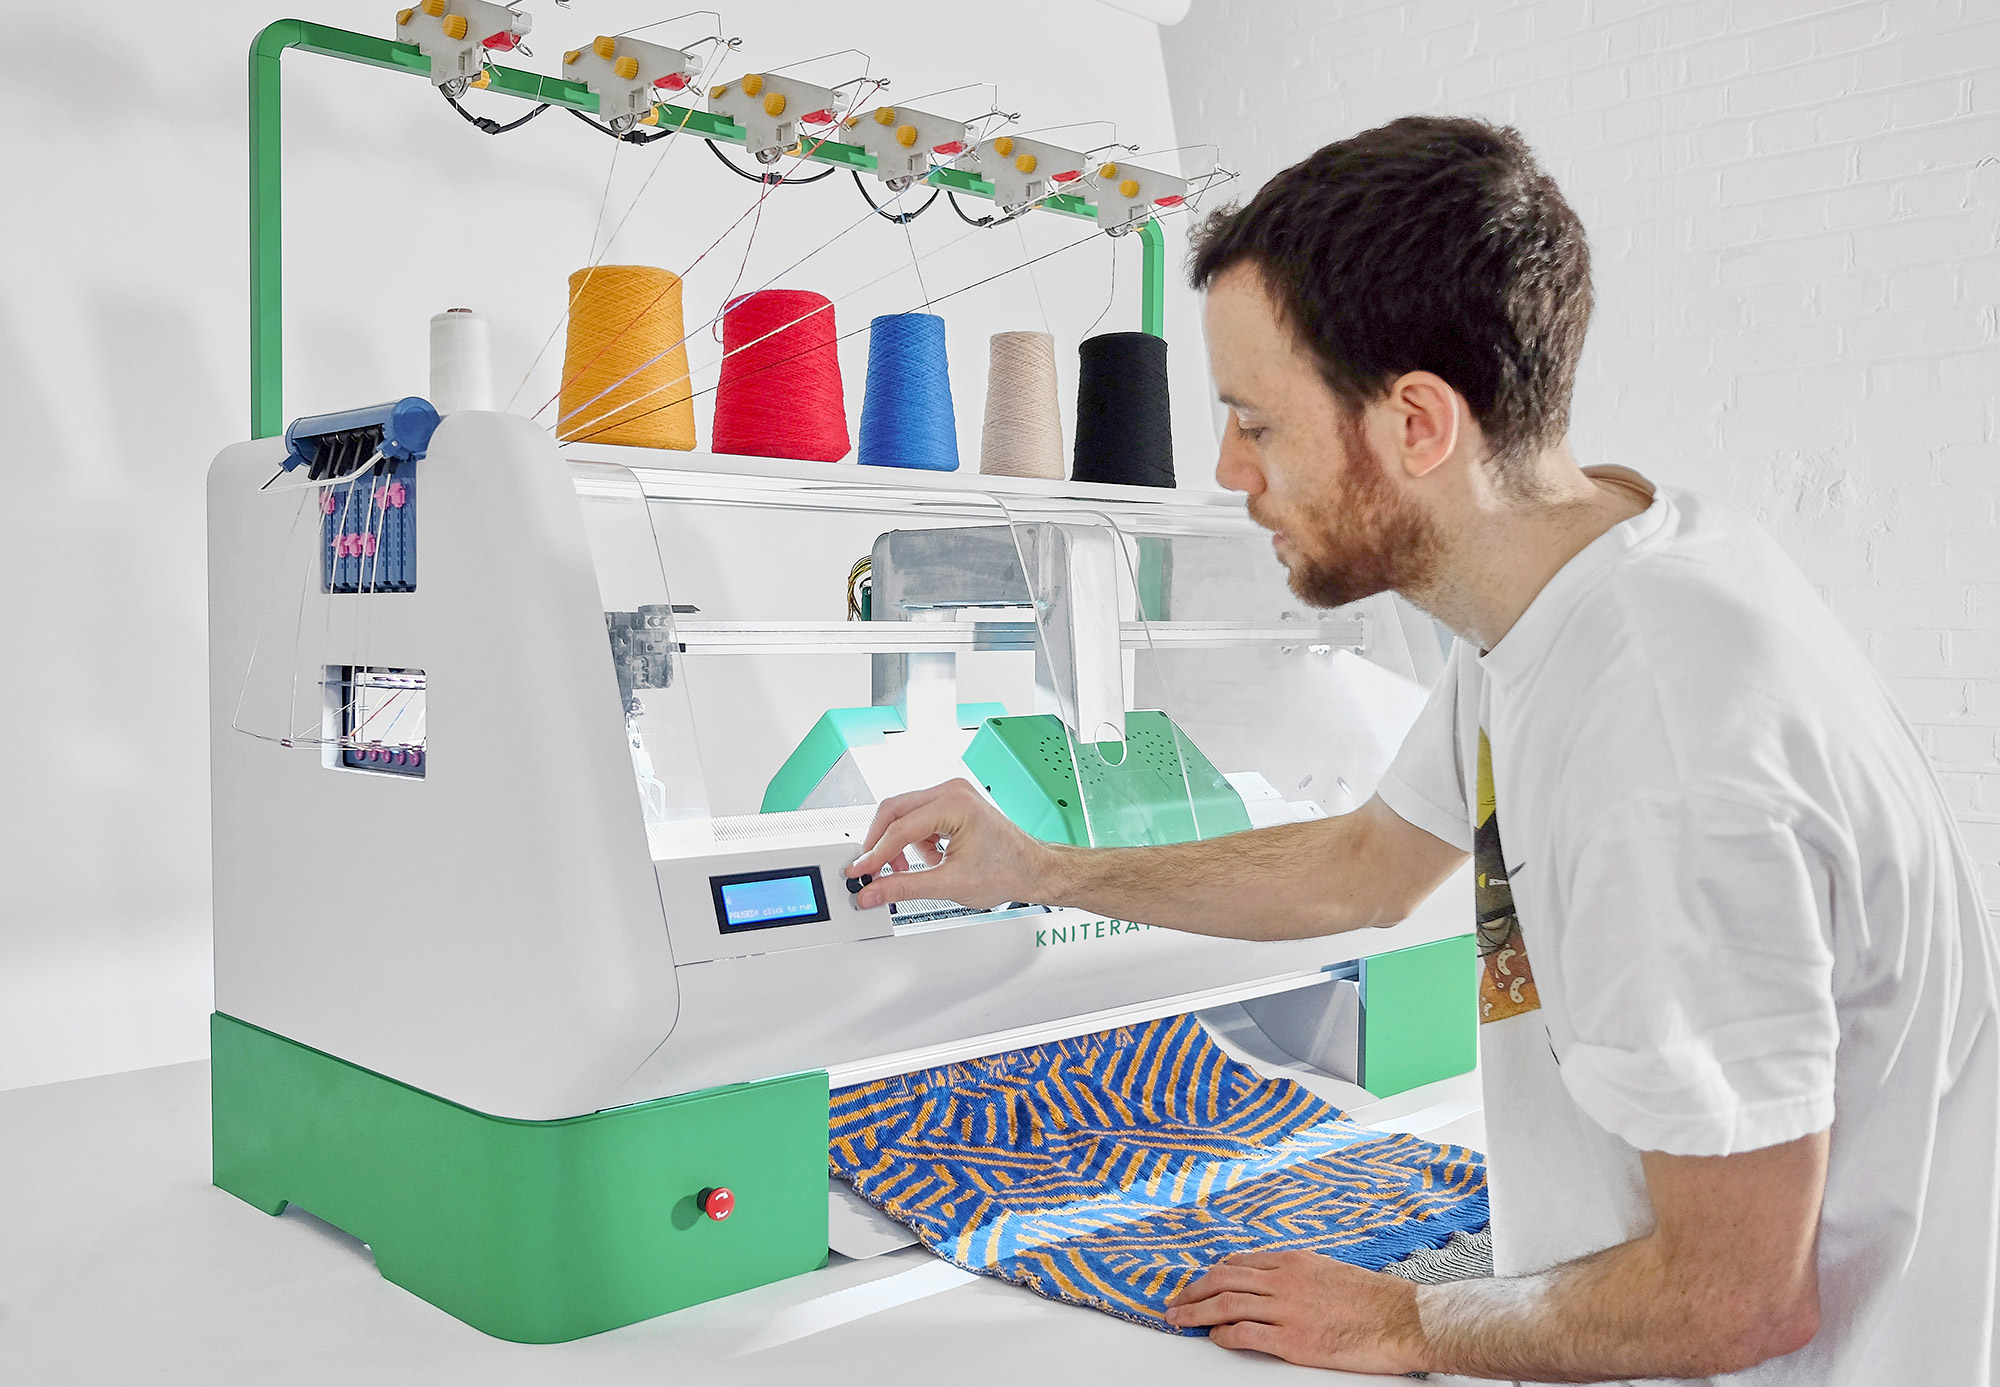 Kniterate machine